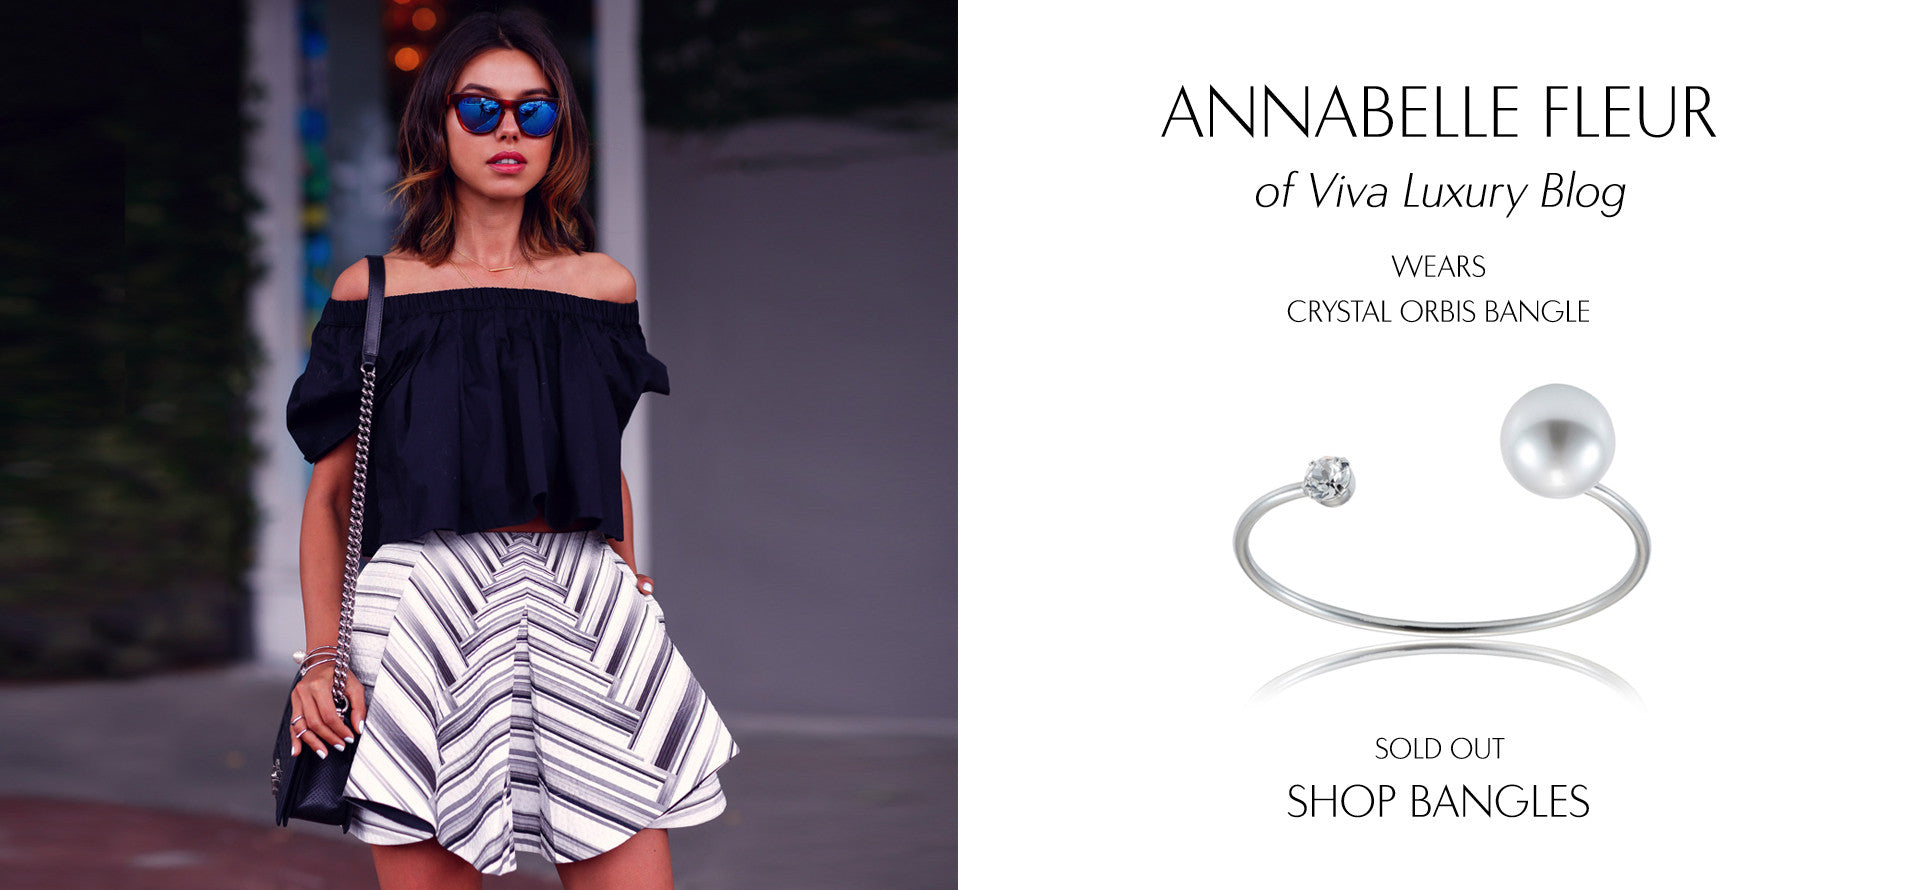 VivaLuxury - Fashion Blog by Annabelle Fleur wears Sarina Suriano crystal orbis pearl bangle